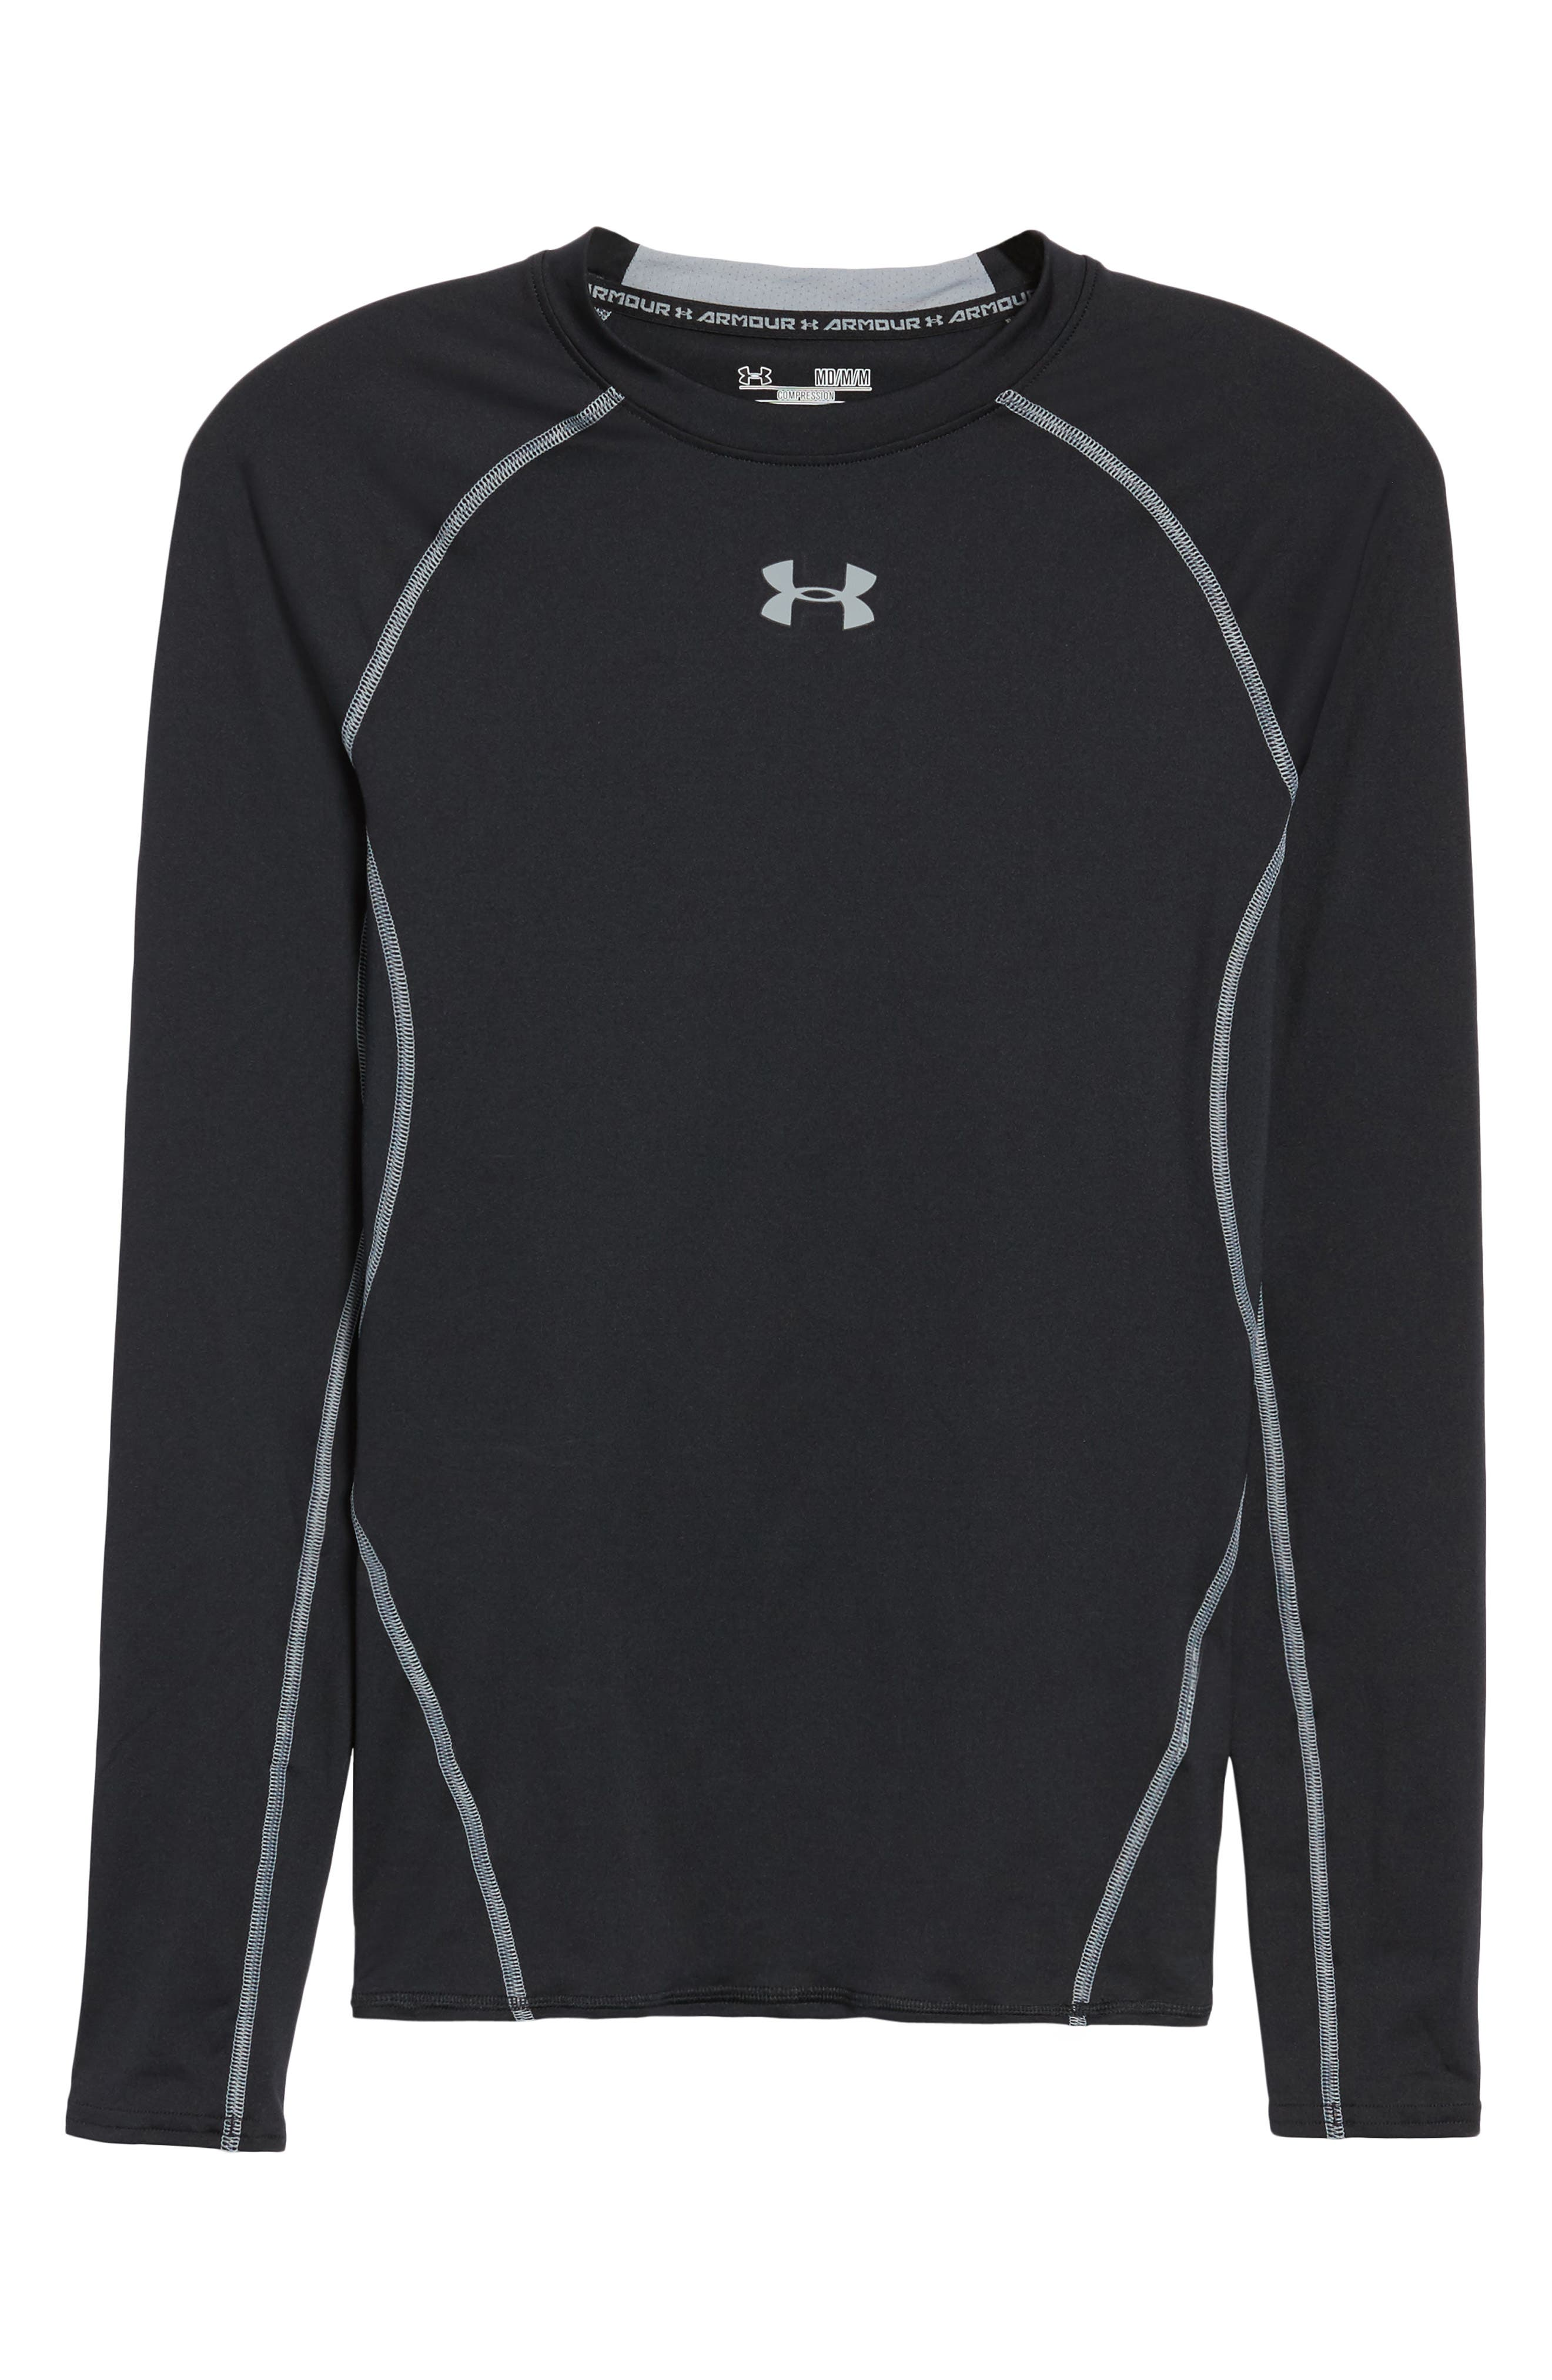 HeatGear<sup>®</sup> Compression Fit Long Sleeve T-Shirt,                             Alternate thumbnail 7, color,                             BLACK/ STEEL